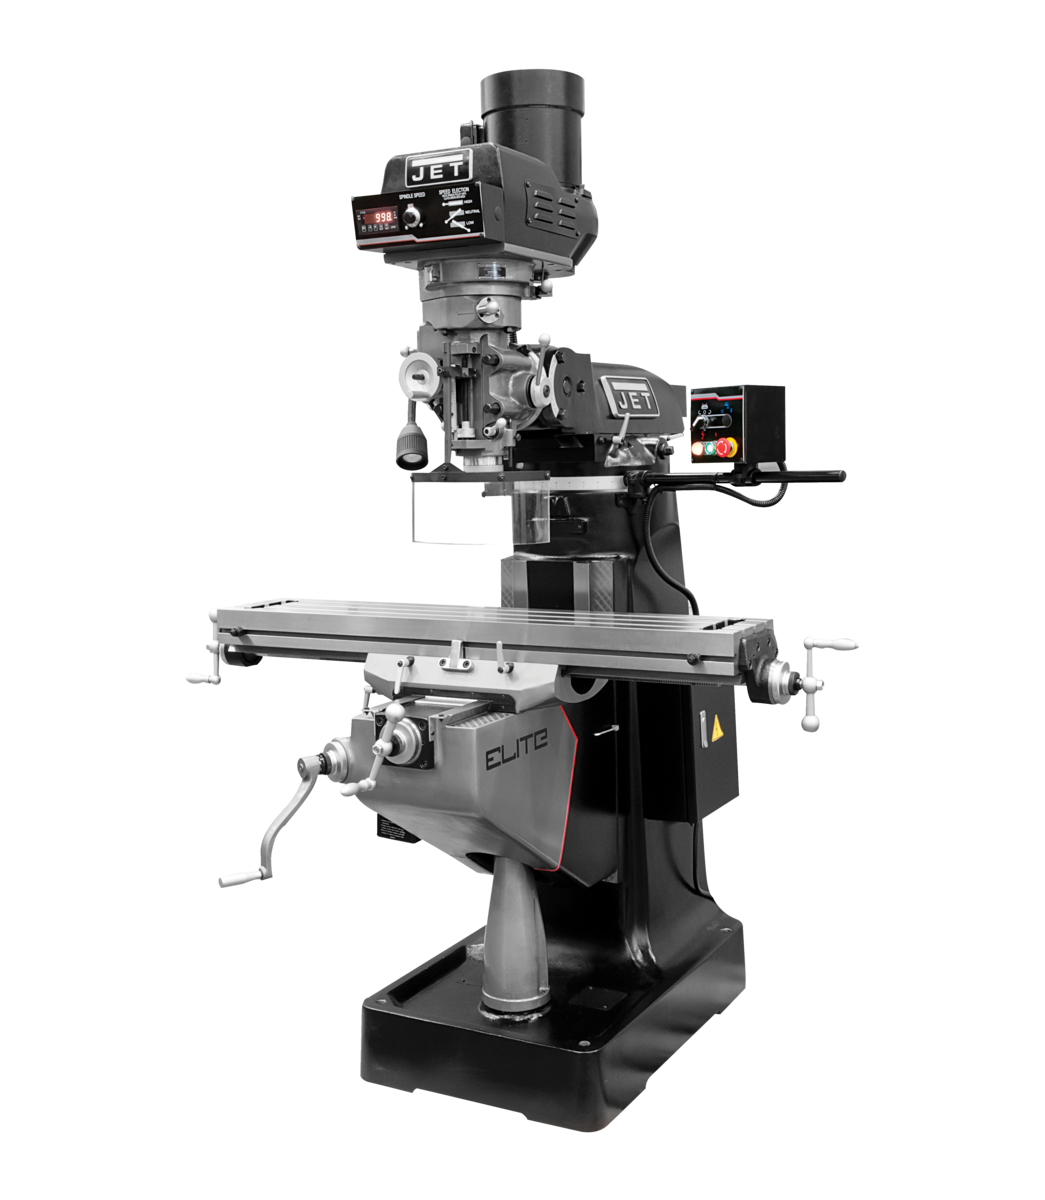 EVS-949 Mill with 3-Axis Newall DP700 (Quill) DRO